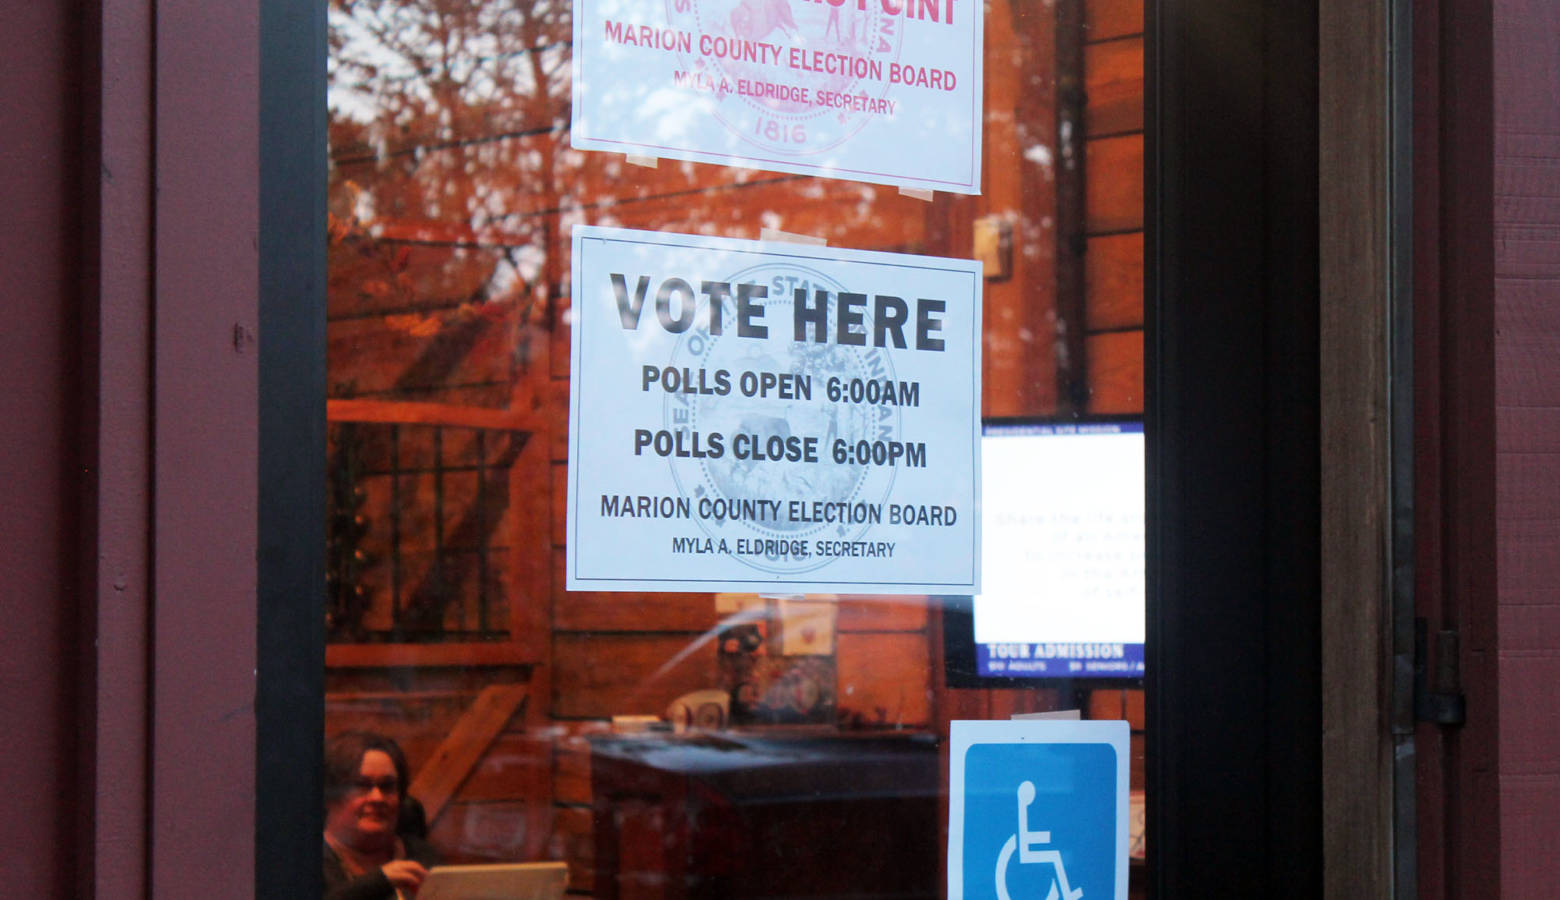 One of Indiana's methods to purge voter rolls will remain shut down after a federal appeals court decision. (Lauren Chapman/IPB News)